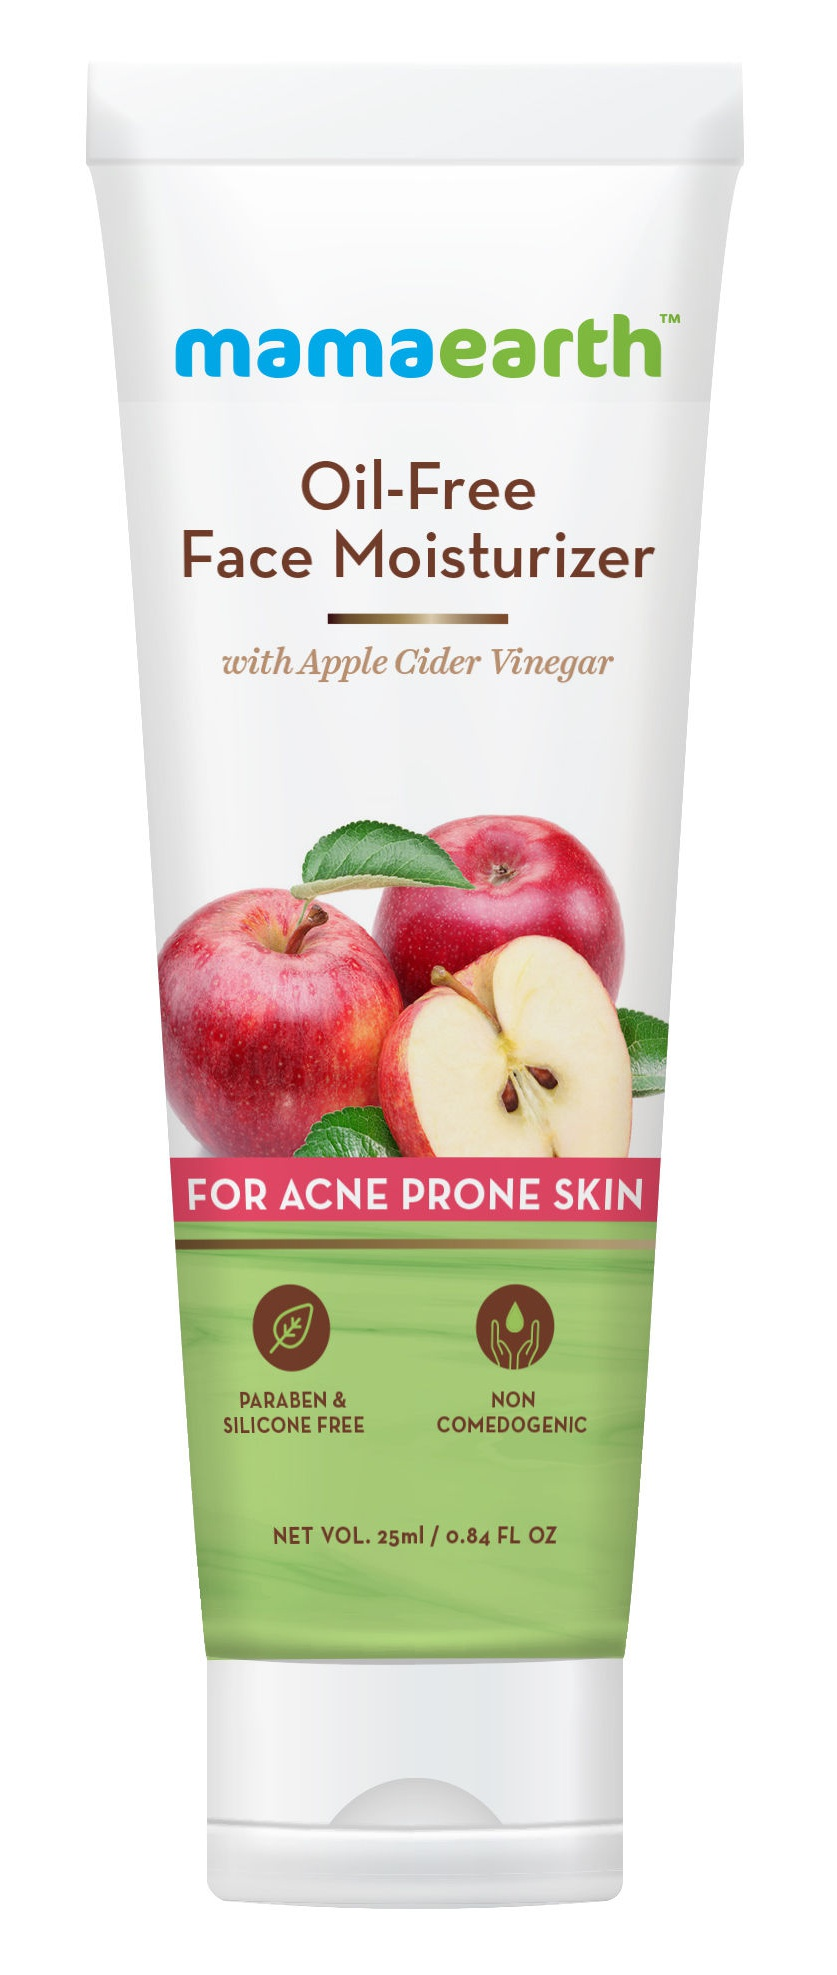 Mamaearth Oil free moisturizer with ACV